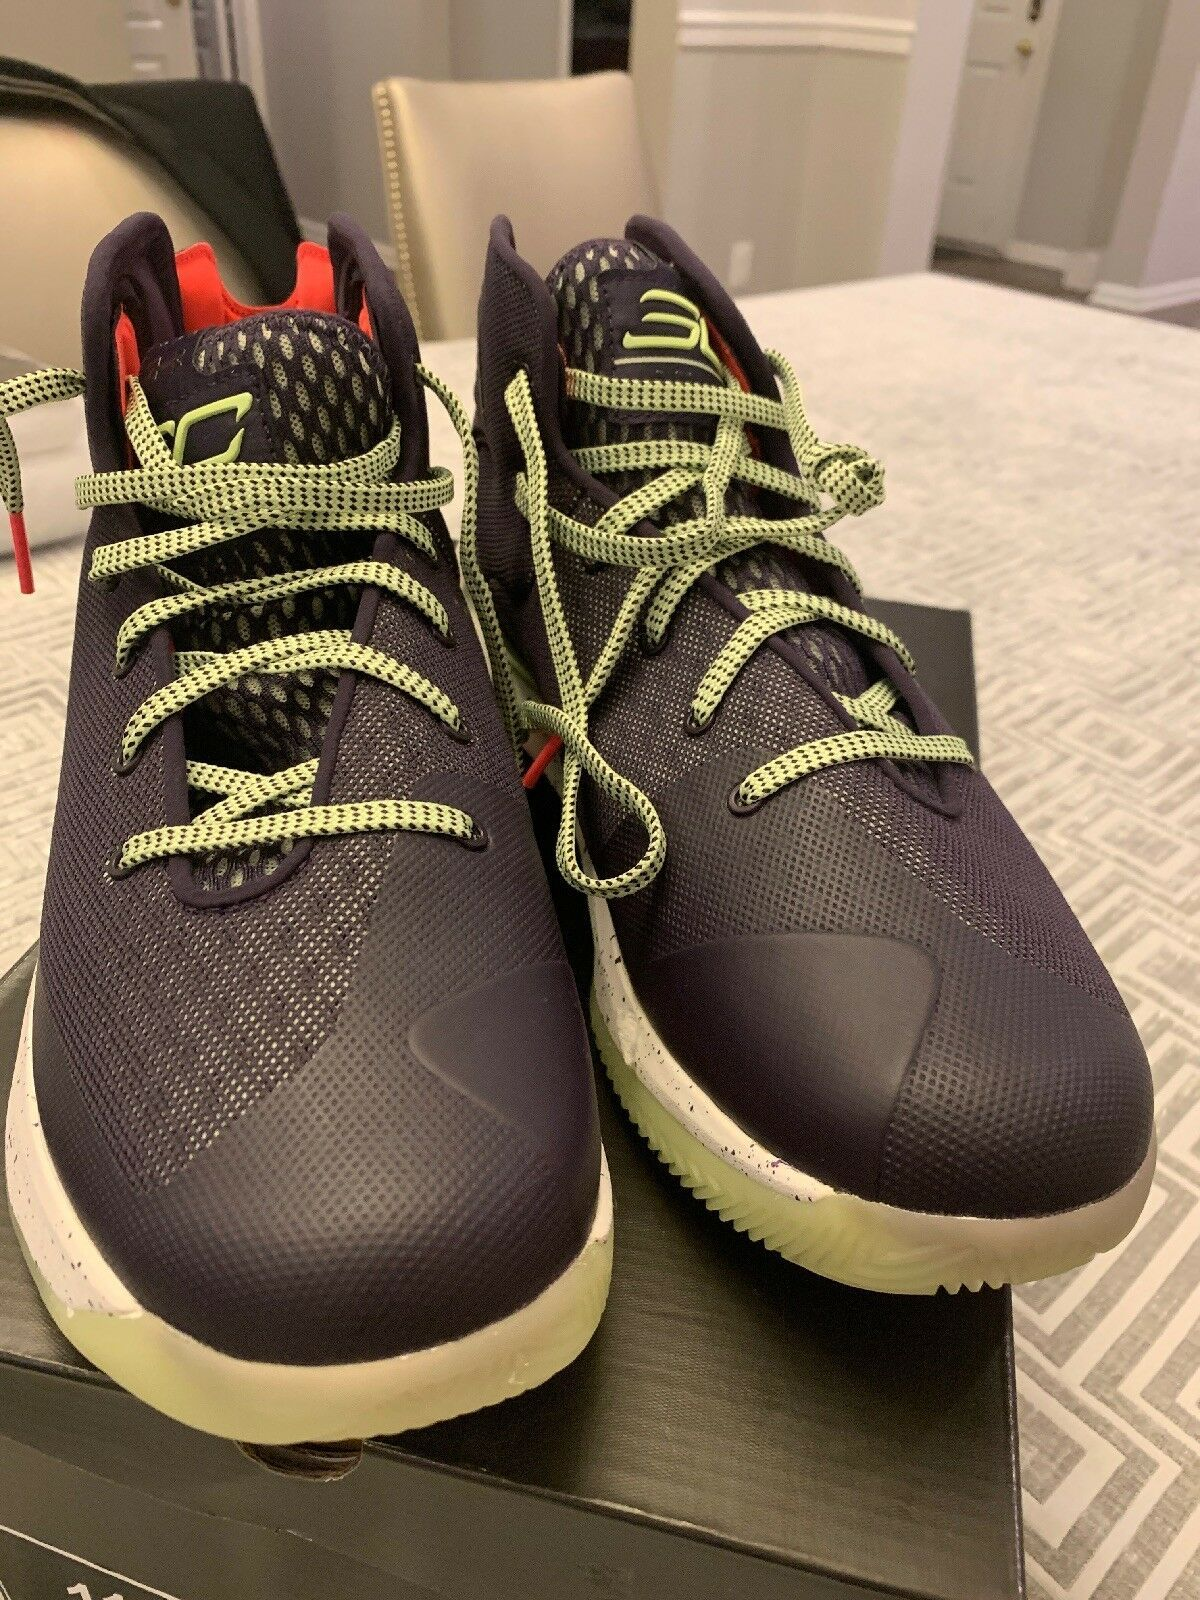 1f41ac3ad50 Under Armour Stephen Curry 3 SC Sneakers Shoes Size 11 Mens Purple Green  Sneaker - Curry